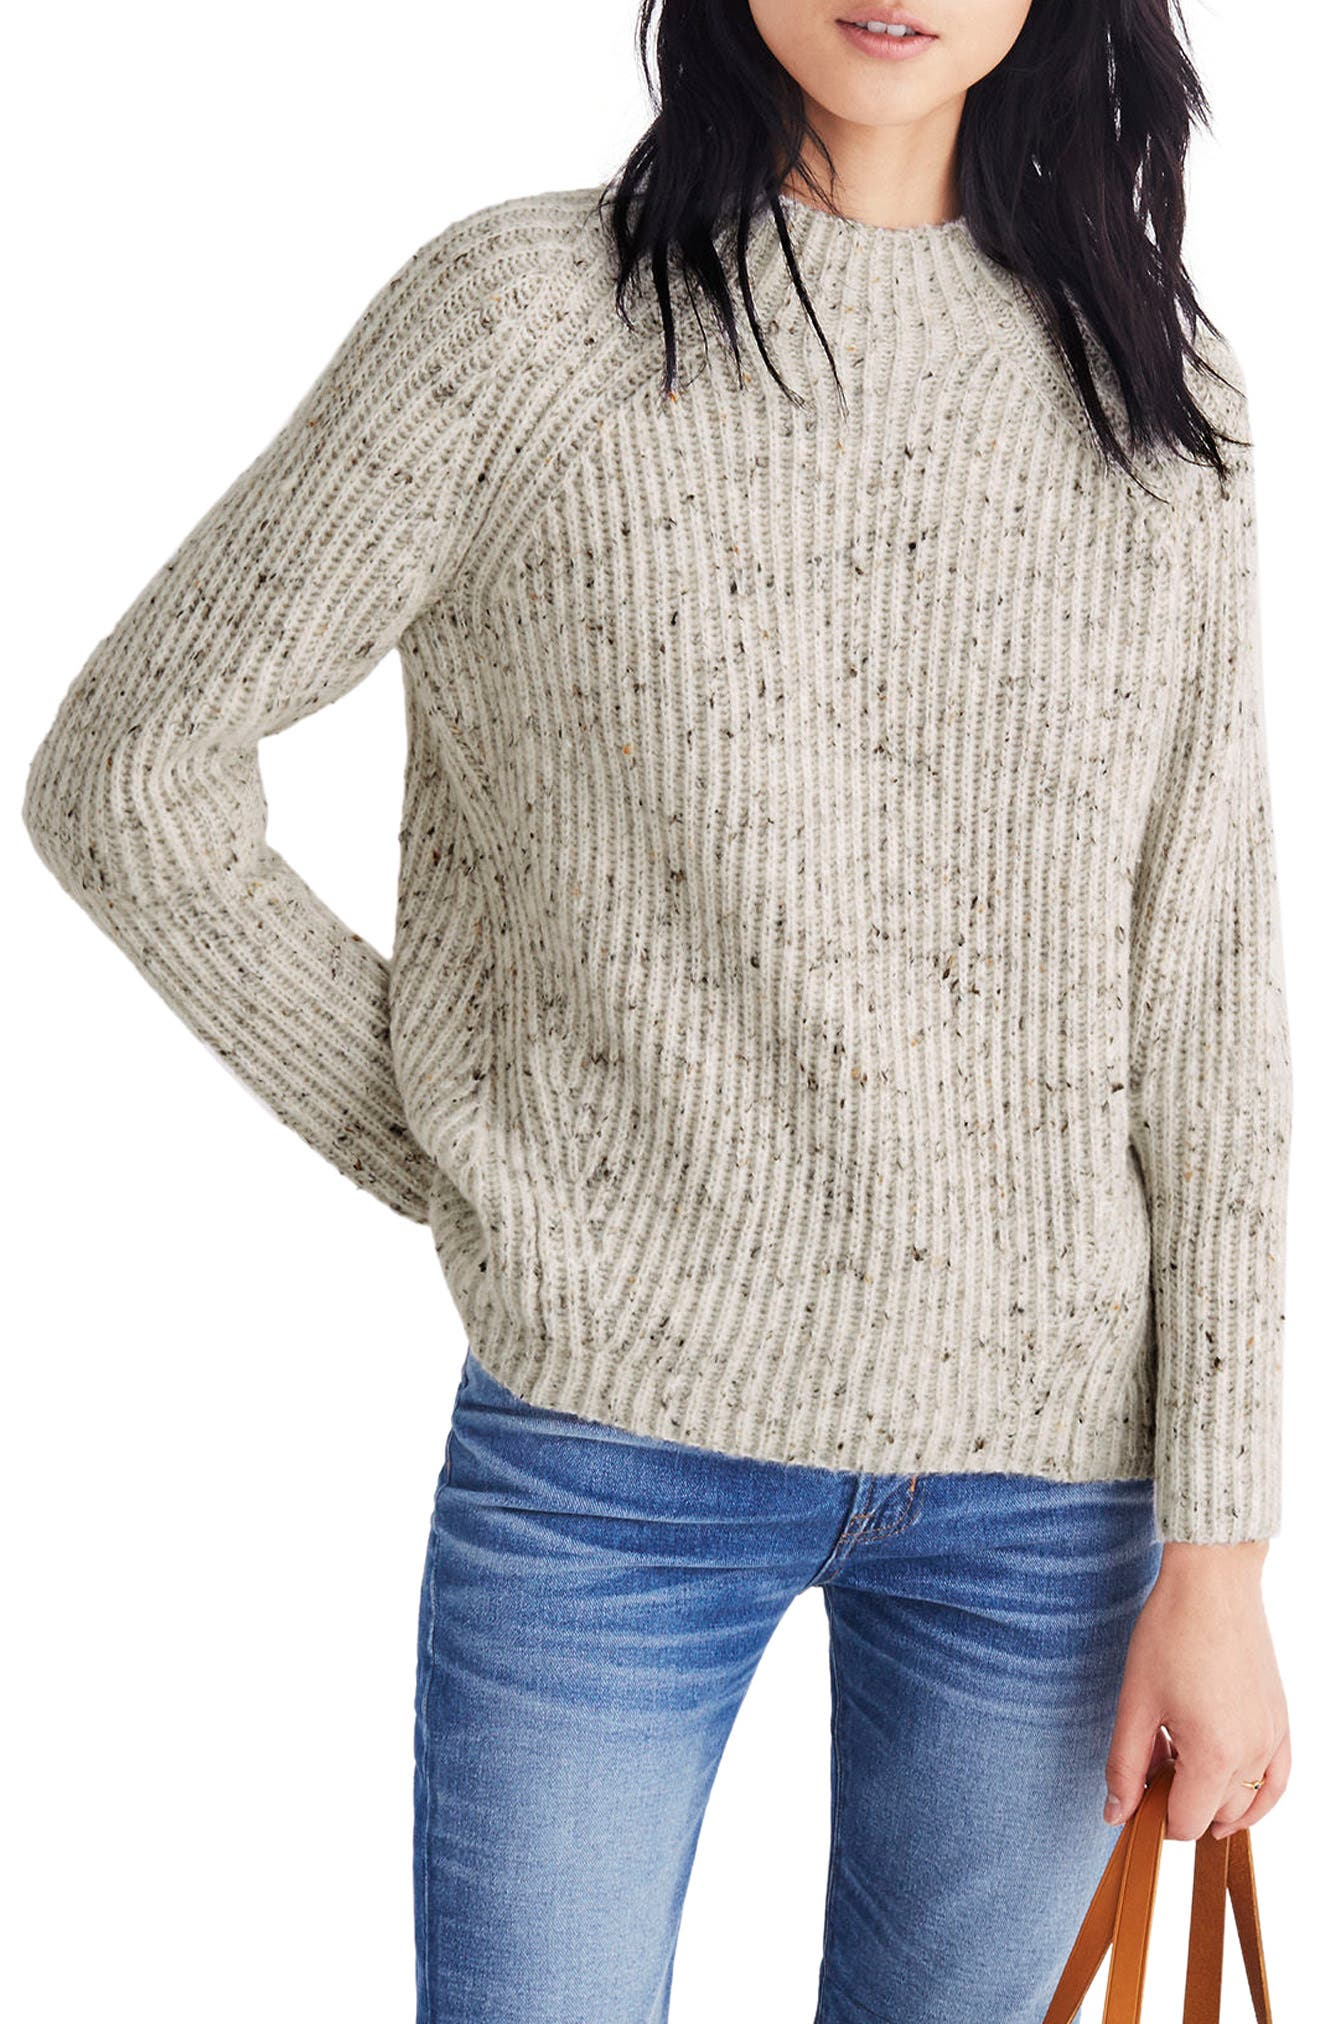 Donegal Northfield Mockneck Sweater,                         Main,                         color, Donegal Snow